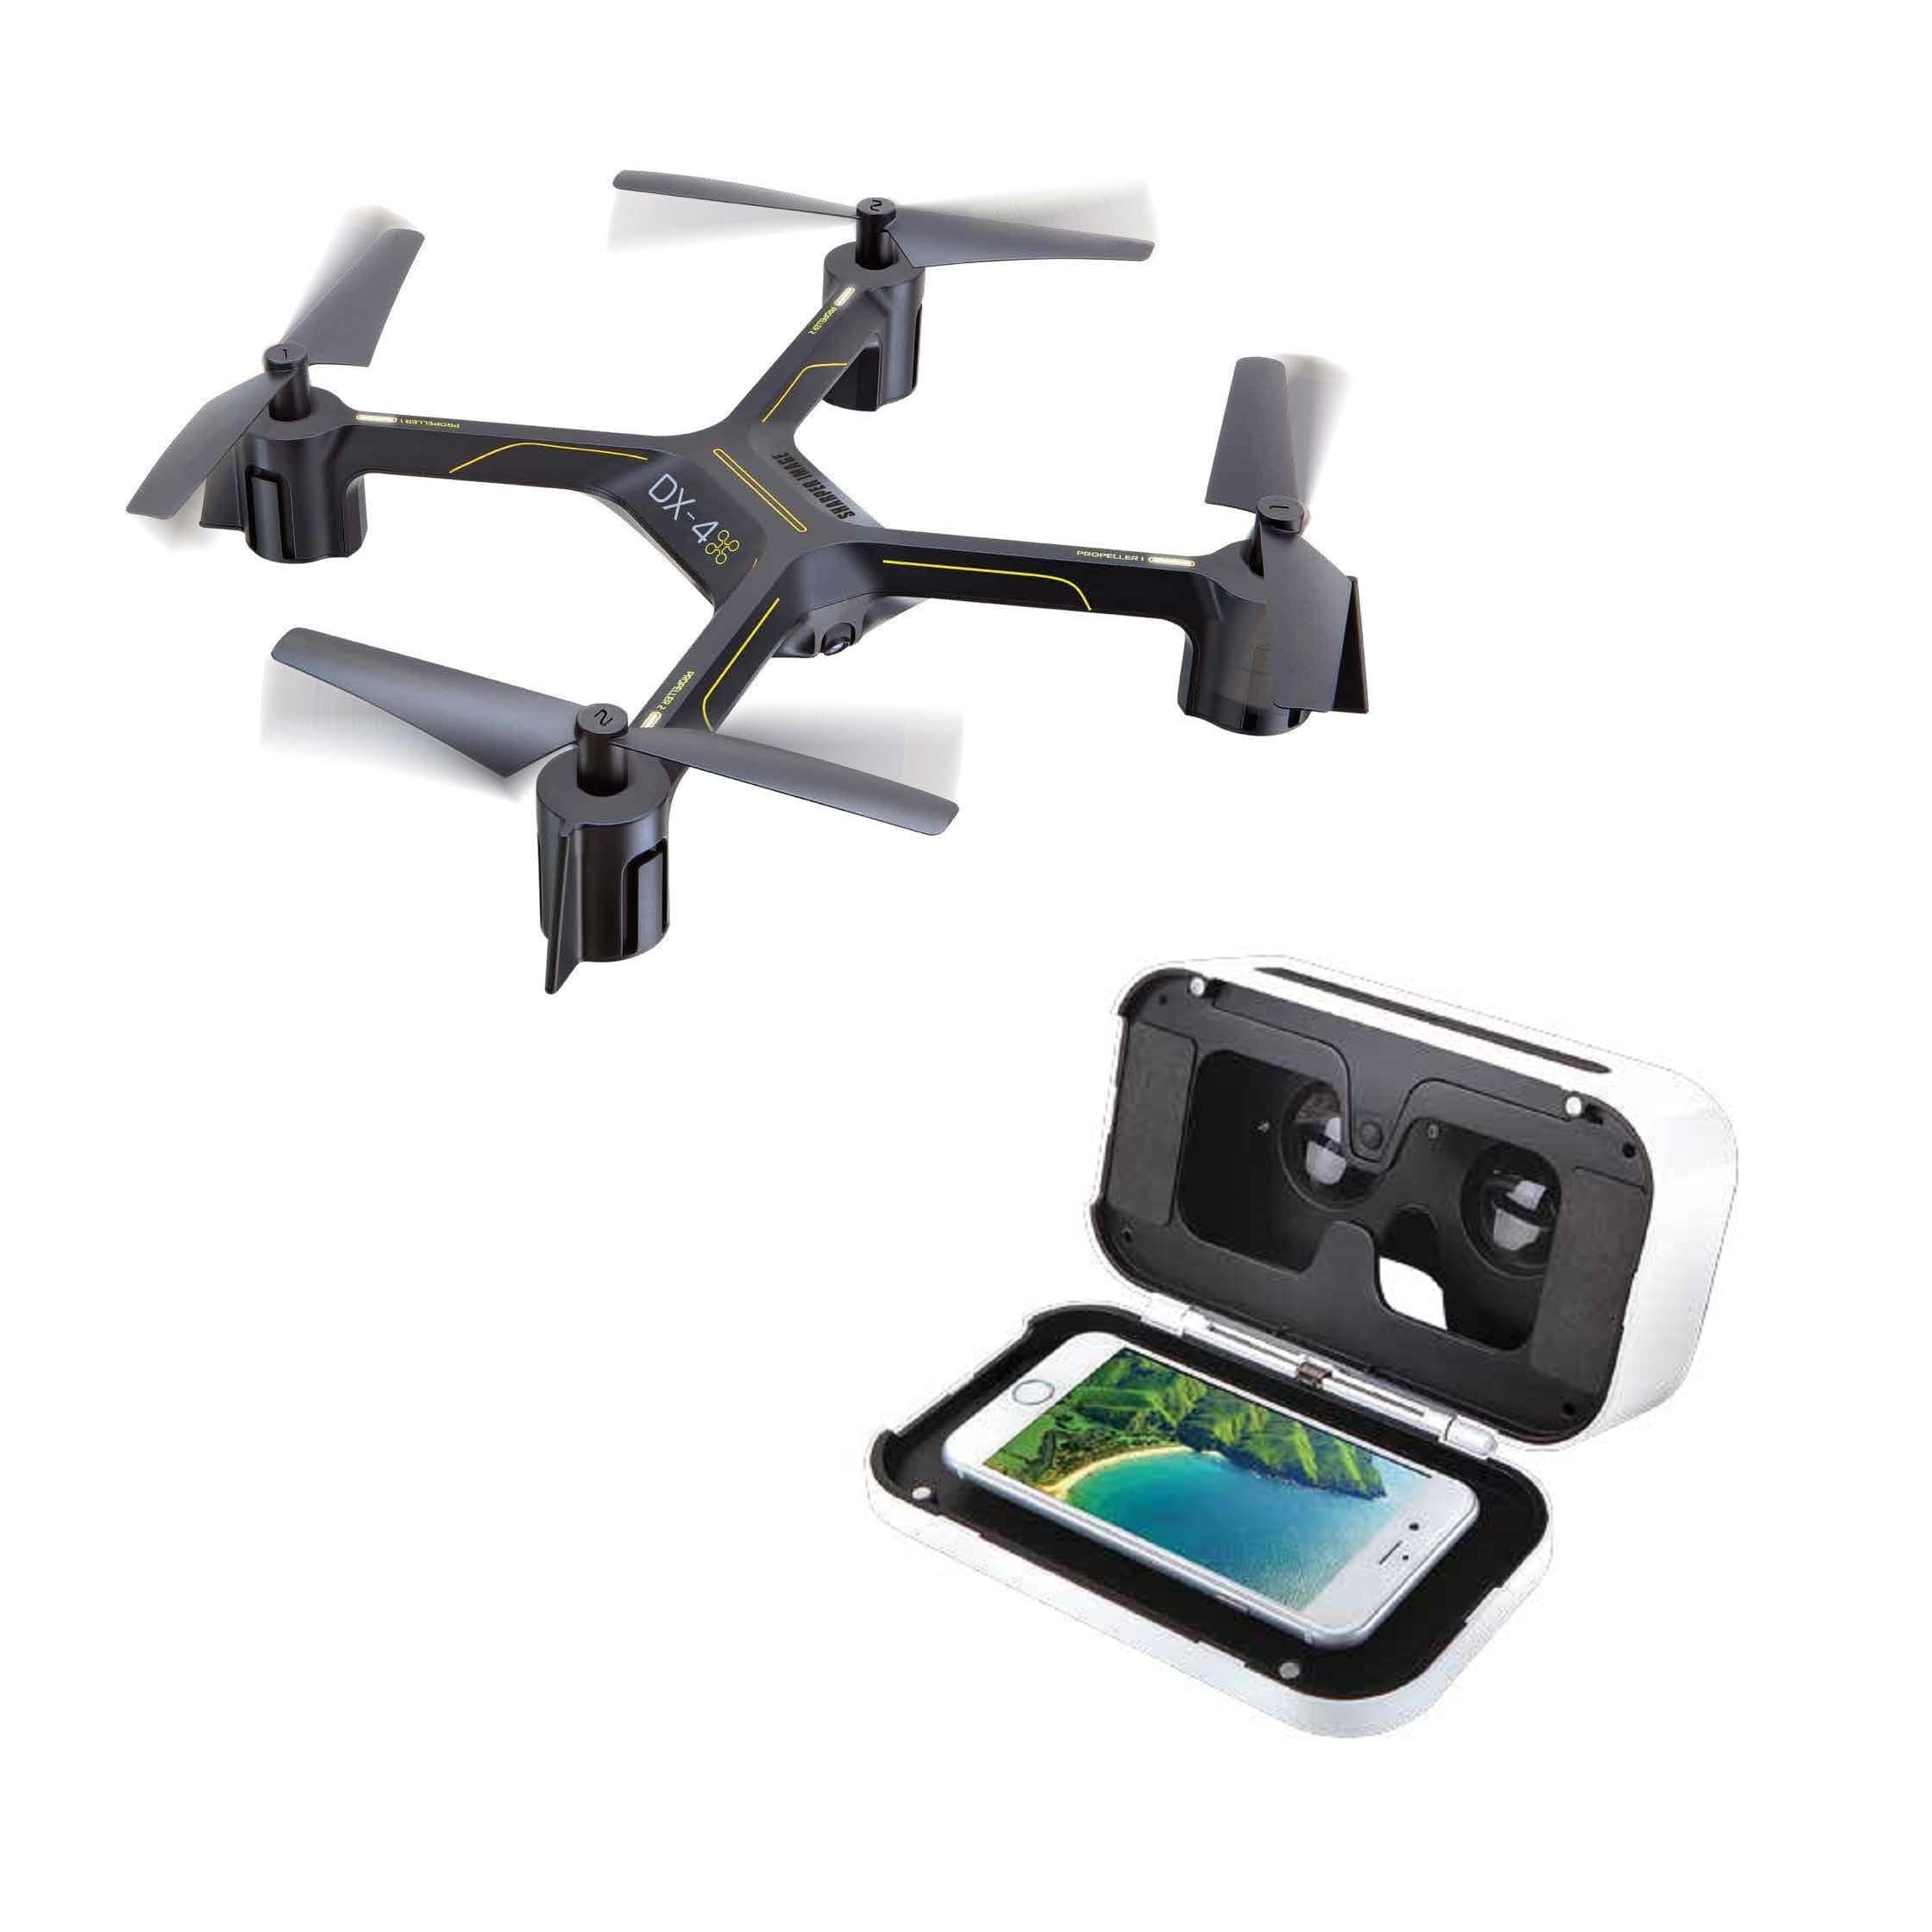 Sharper Image Dx 4 Hd Video Fpv Streaming Drone Walmartcom